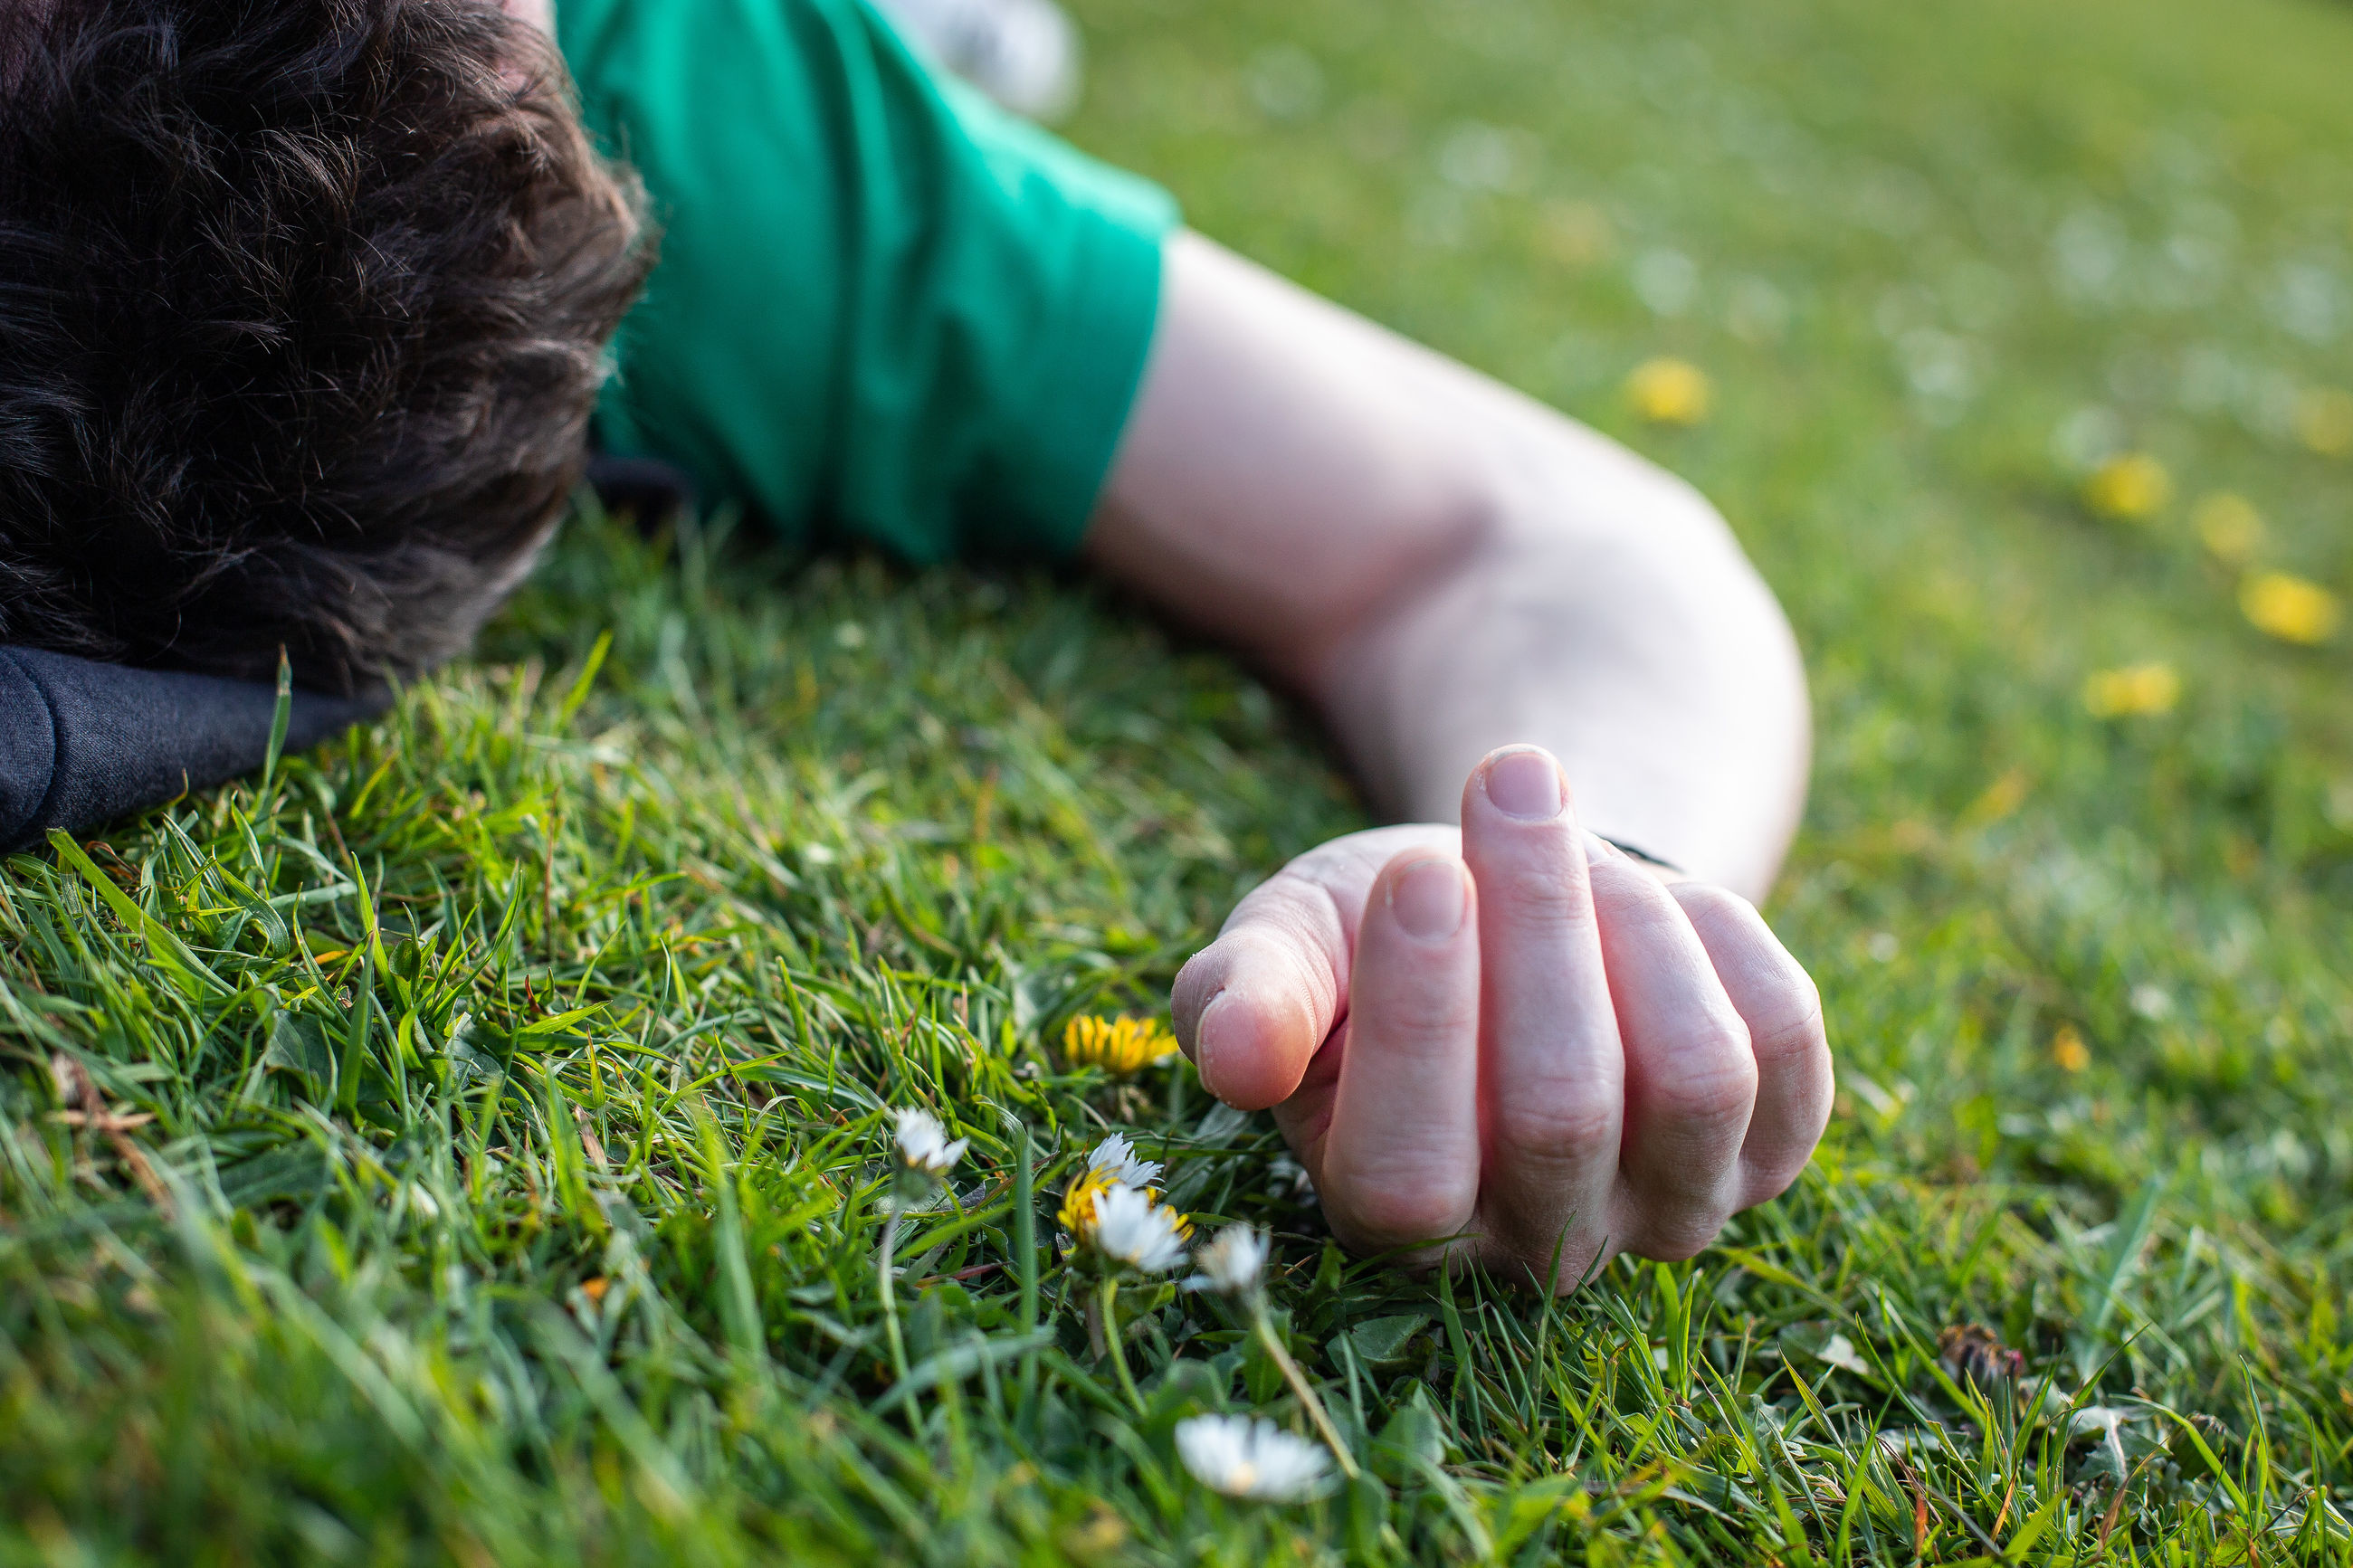 grass, plant, one person, green color, real people, field, human hand, child, childhood, nature, selective focus, hand, land, day, leisure activity, growth, close-up, human body part, holding, outdoors, finger, innocence